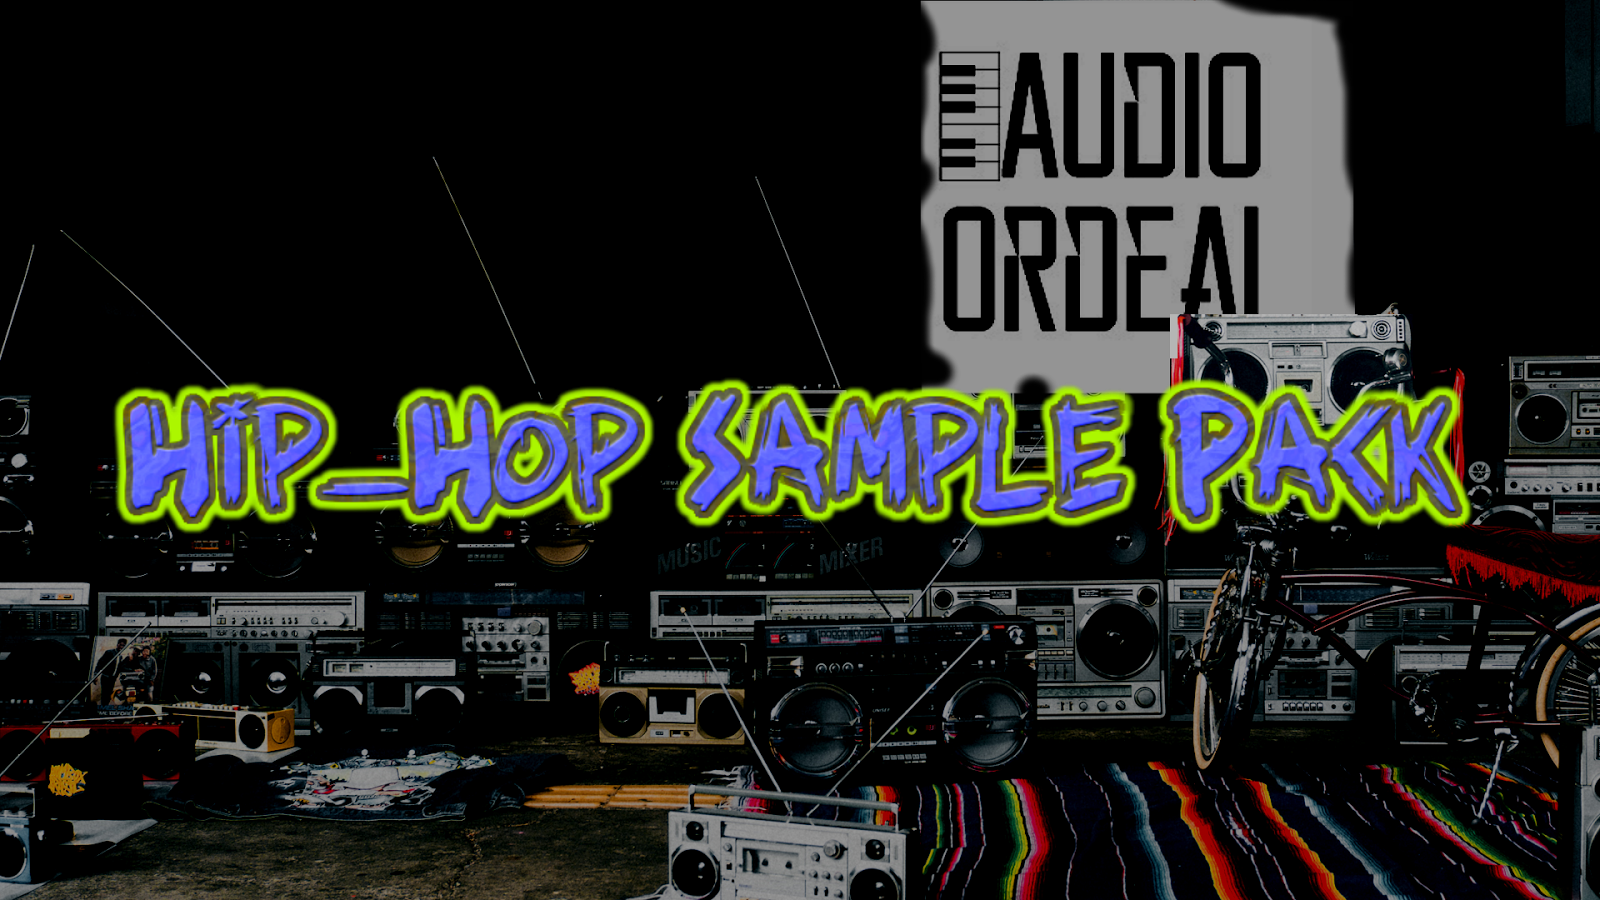 This Sample Pack Is Free To Use Edit And Manipulate For Home And Commercial Projects The Sounds Are Designed To Bring Unique New Vibes To The Standard